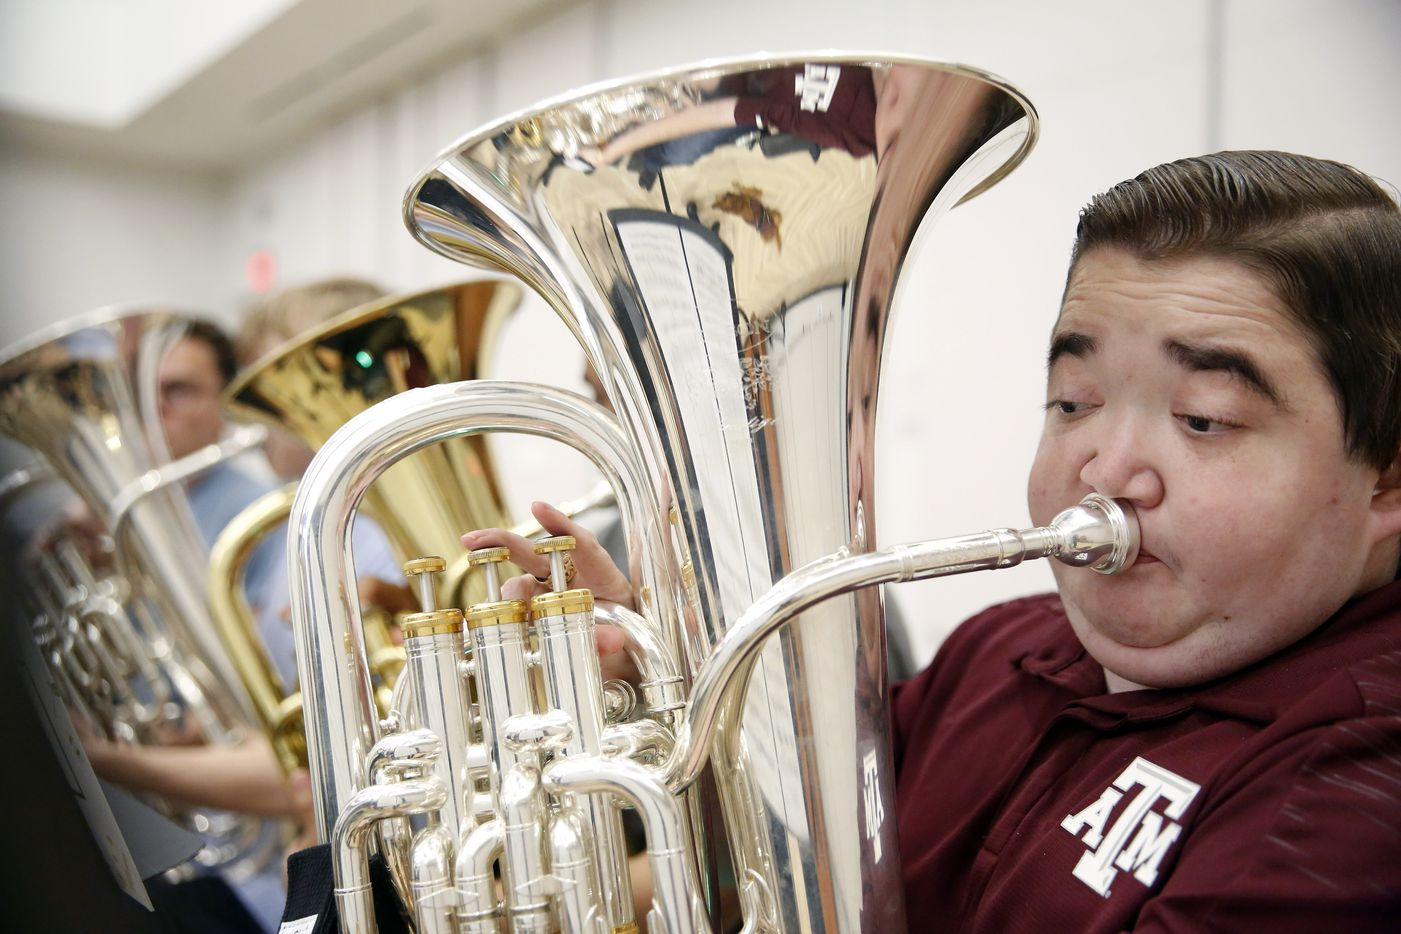 Texas A&M graduate student Kyle Cox (right in wheelchair), who has Duchenne Muscular Dystrophy, warms up his baritone before symphonic band rehearsal at the new Music Activities Center on the Texas A&M campus in College Station, Texas, Wednesday, September 11, 2019. (Tom Fox/The Dallas Morning News)